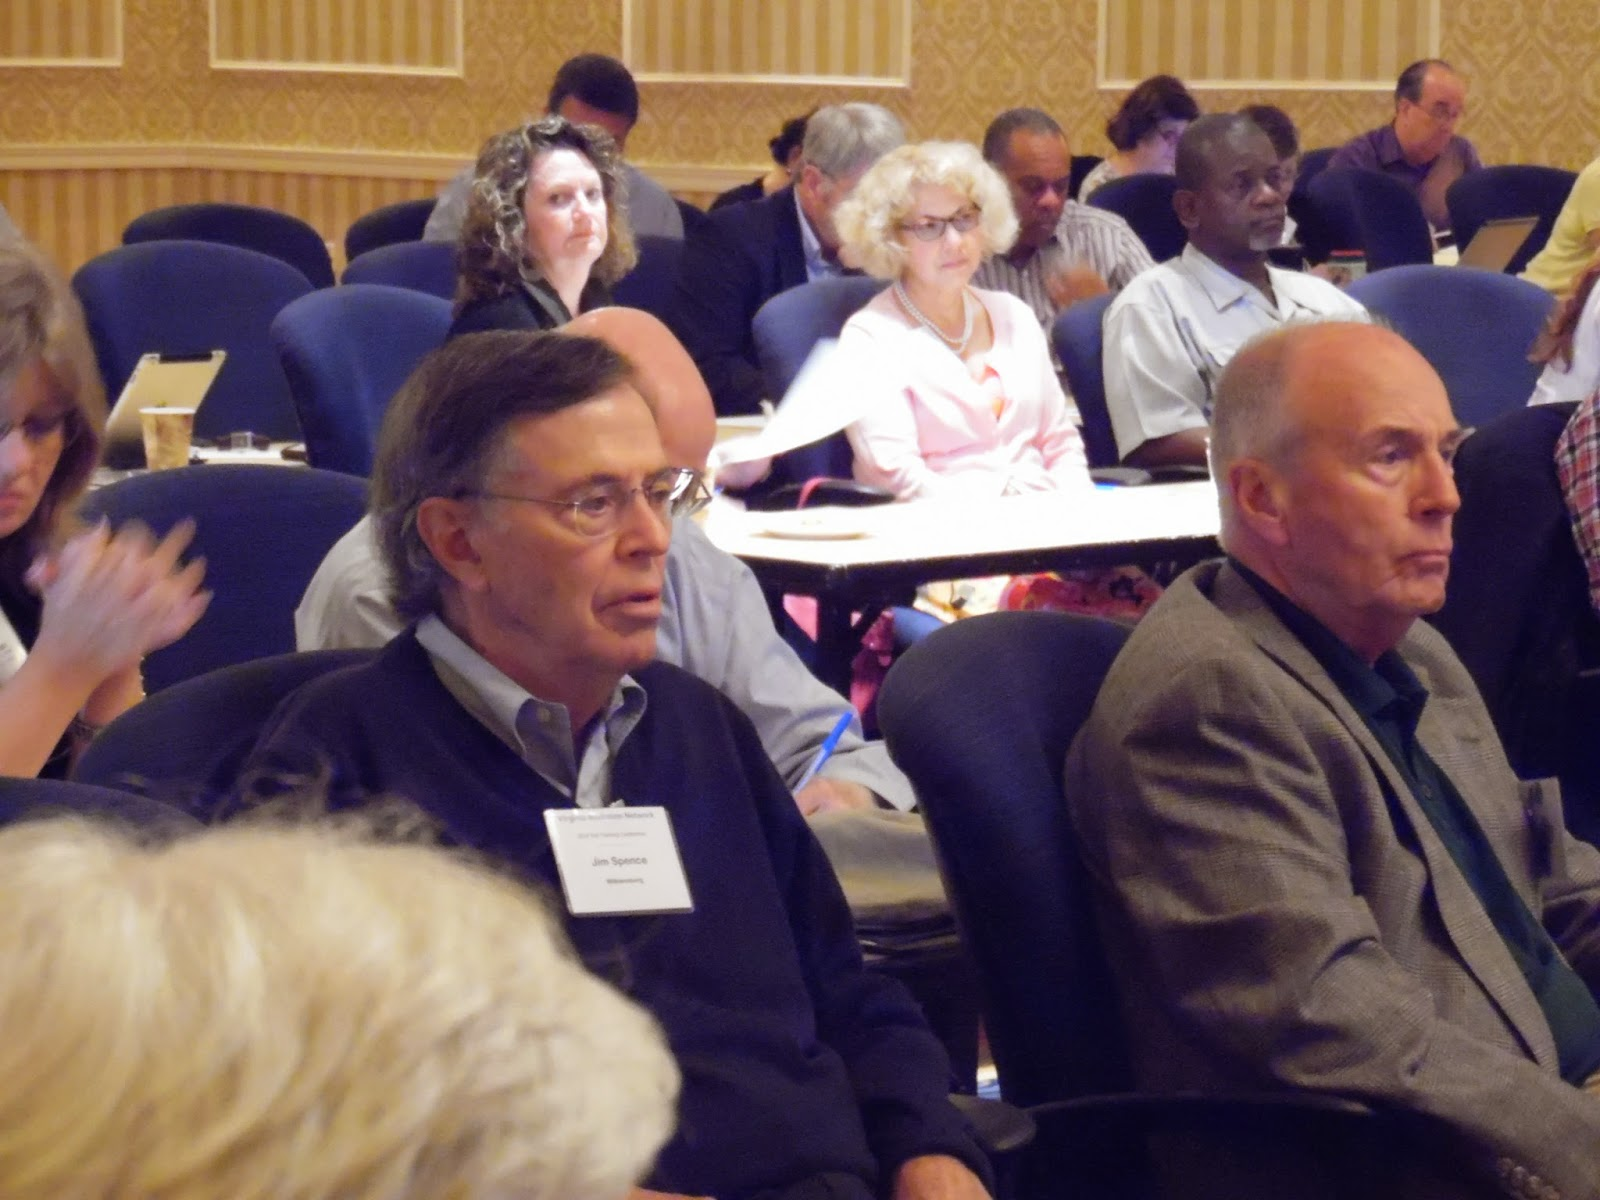 VMN continues to offer one full conference in the fall, and several mini-conferences in the spring.